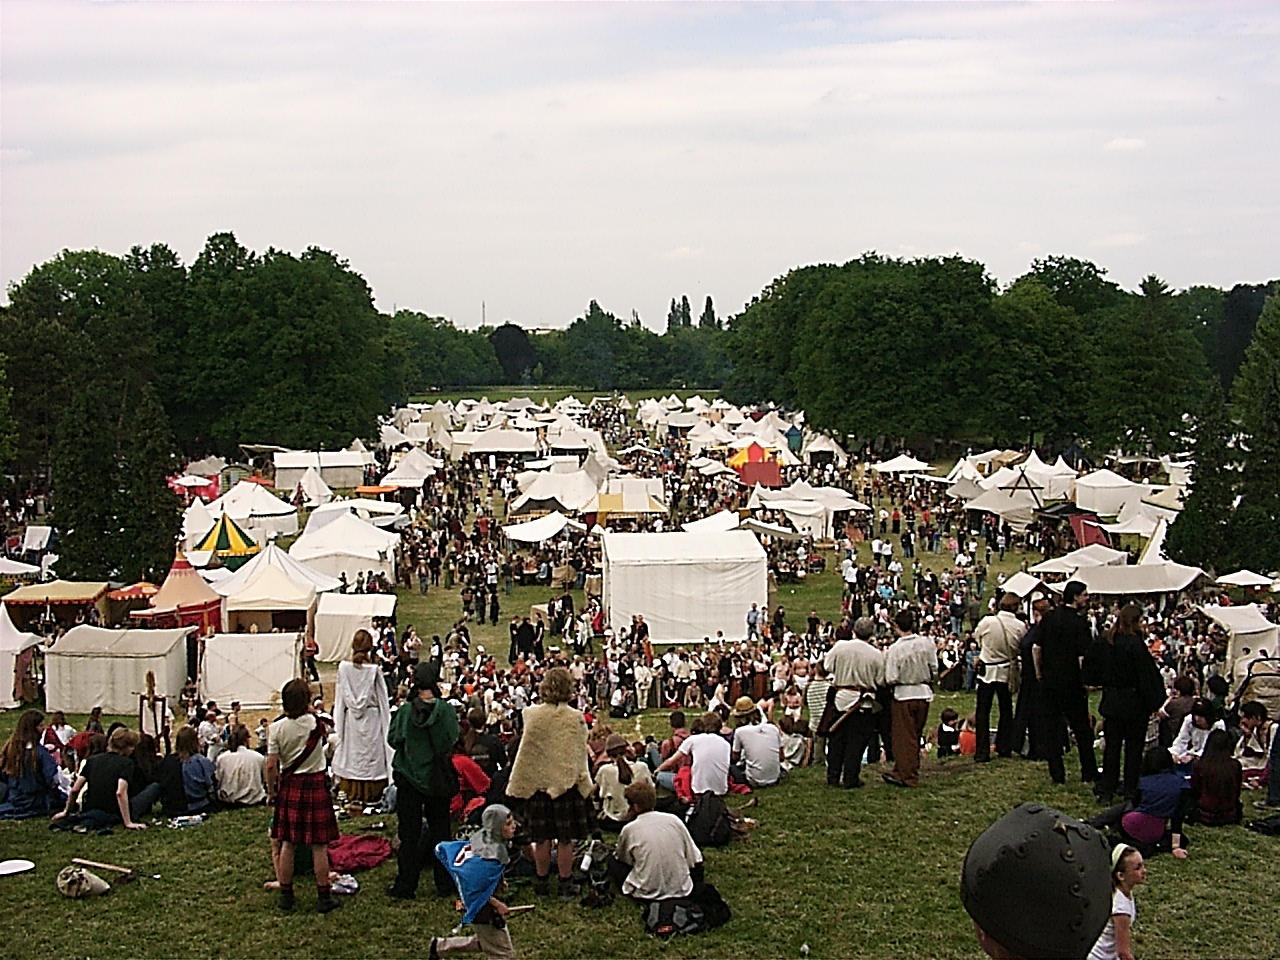 Spectaculum Worms 2008